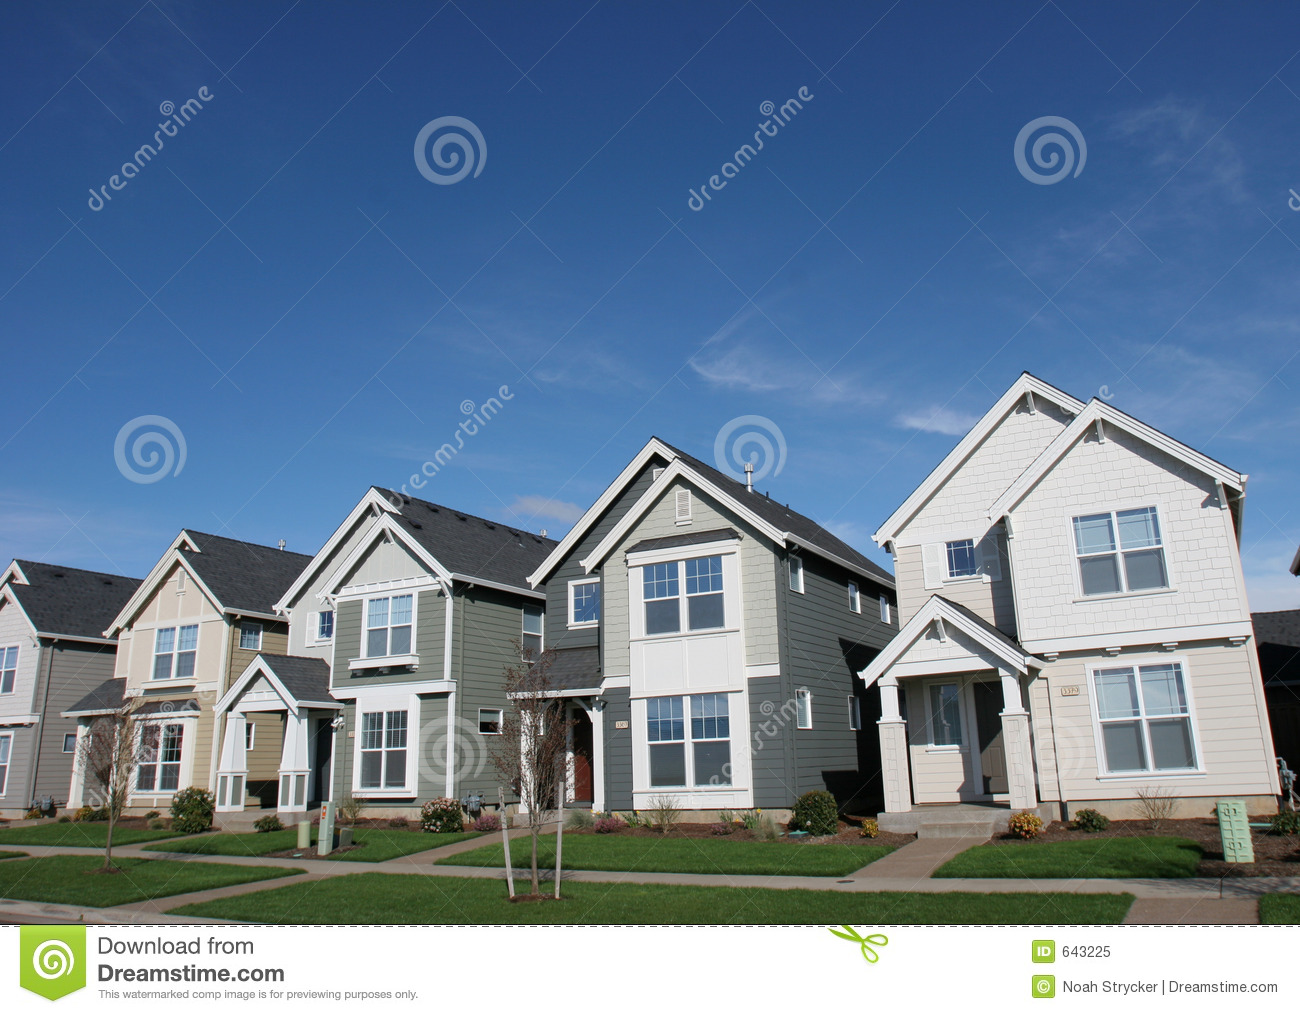 Suburban houses stock image image of house blue housing for Free house photos